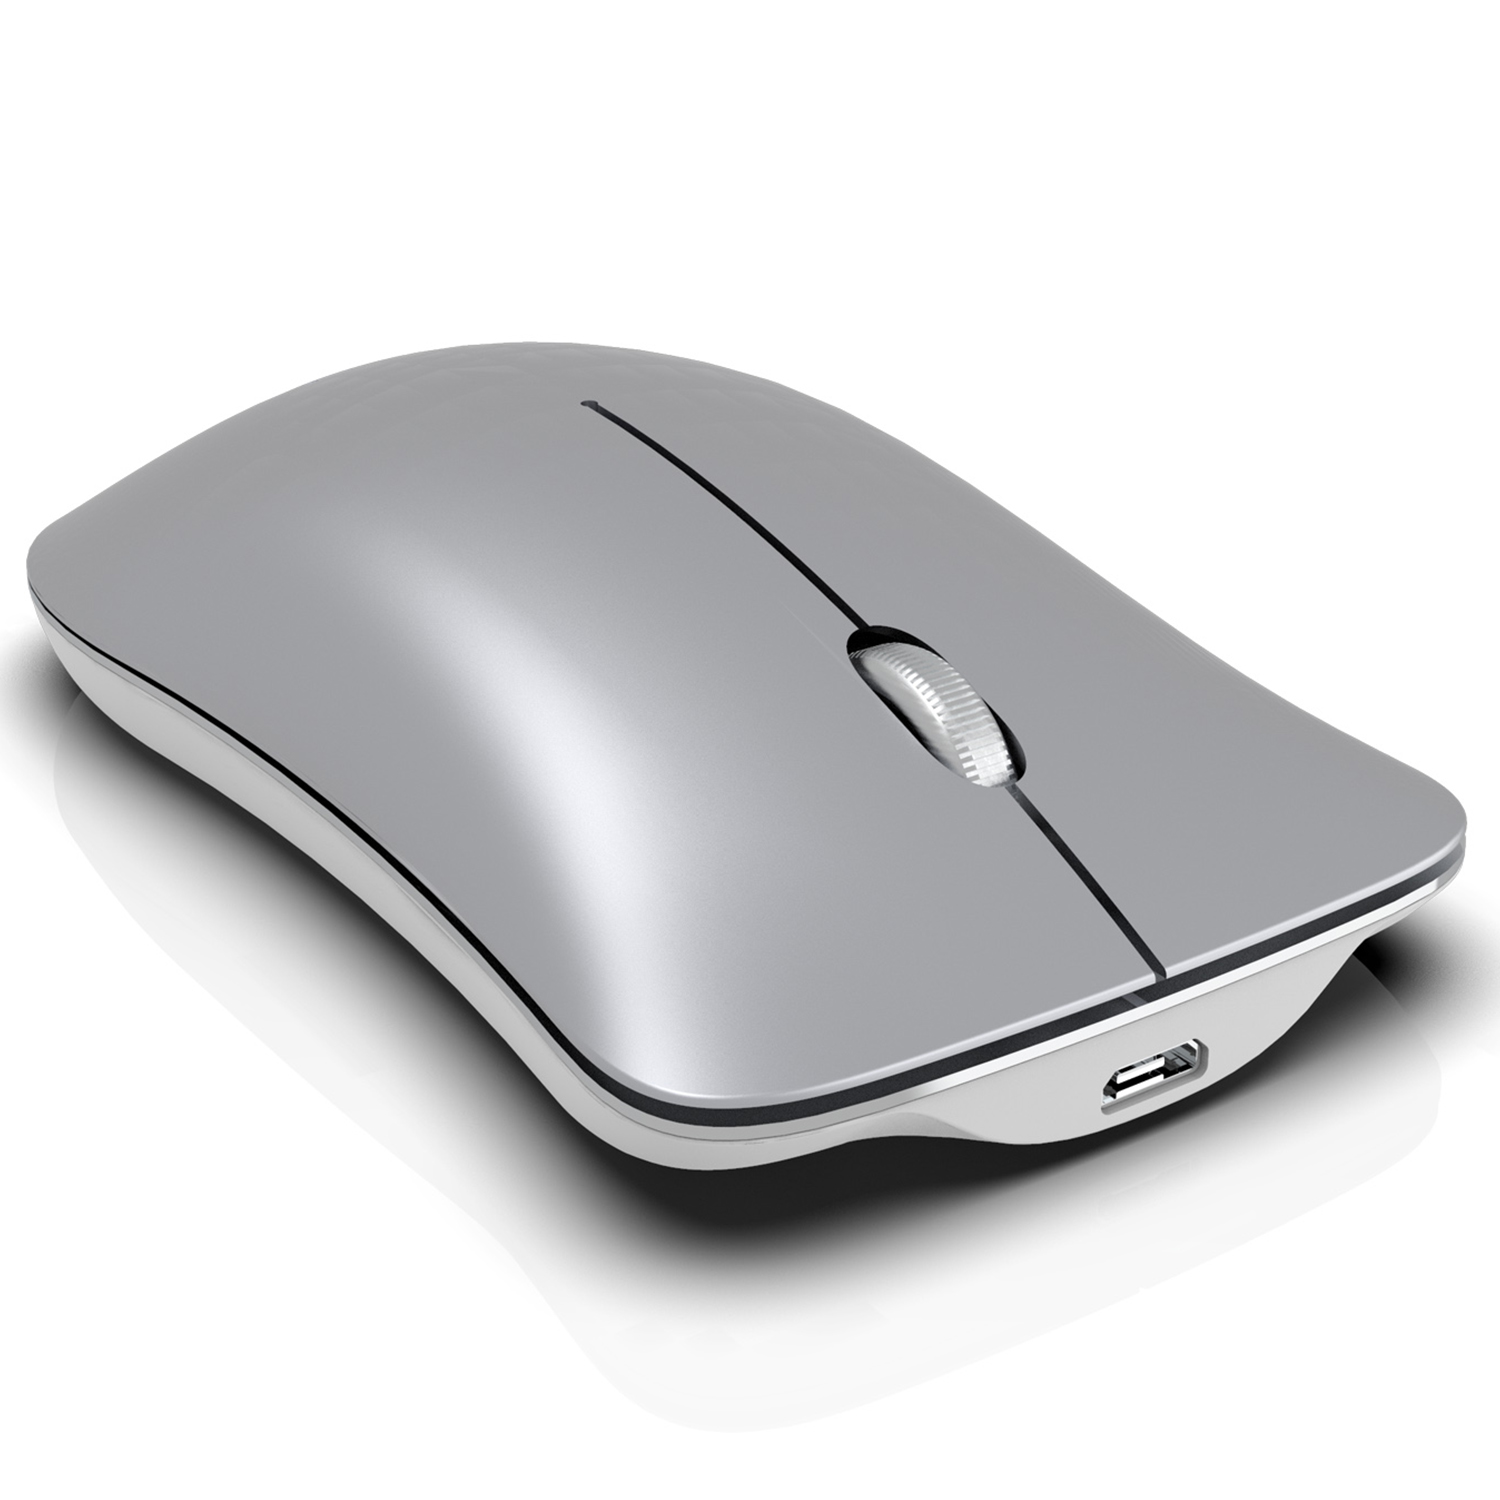 HXSJ T23 Mouse Wireless Mouse Mice Ergonomic Vertical Mice BT 2.4Ghz Wireless High Speed Rechargeable Optical Sensor for Windo